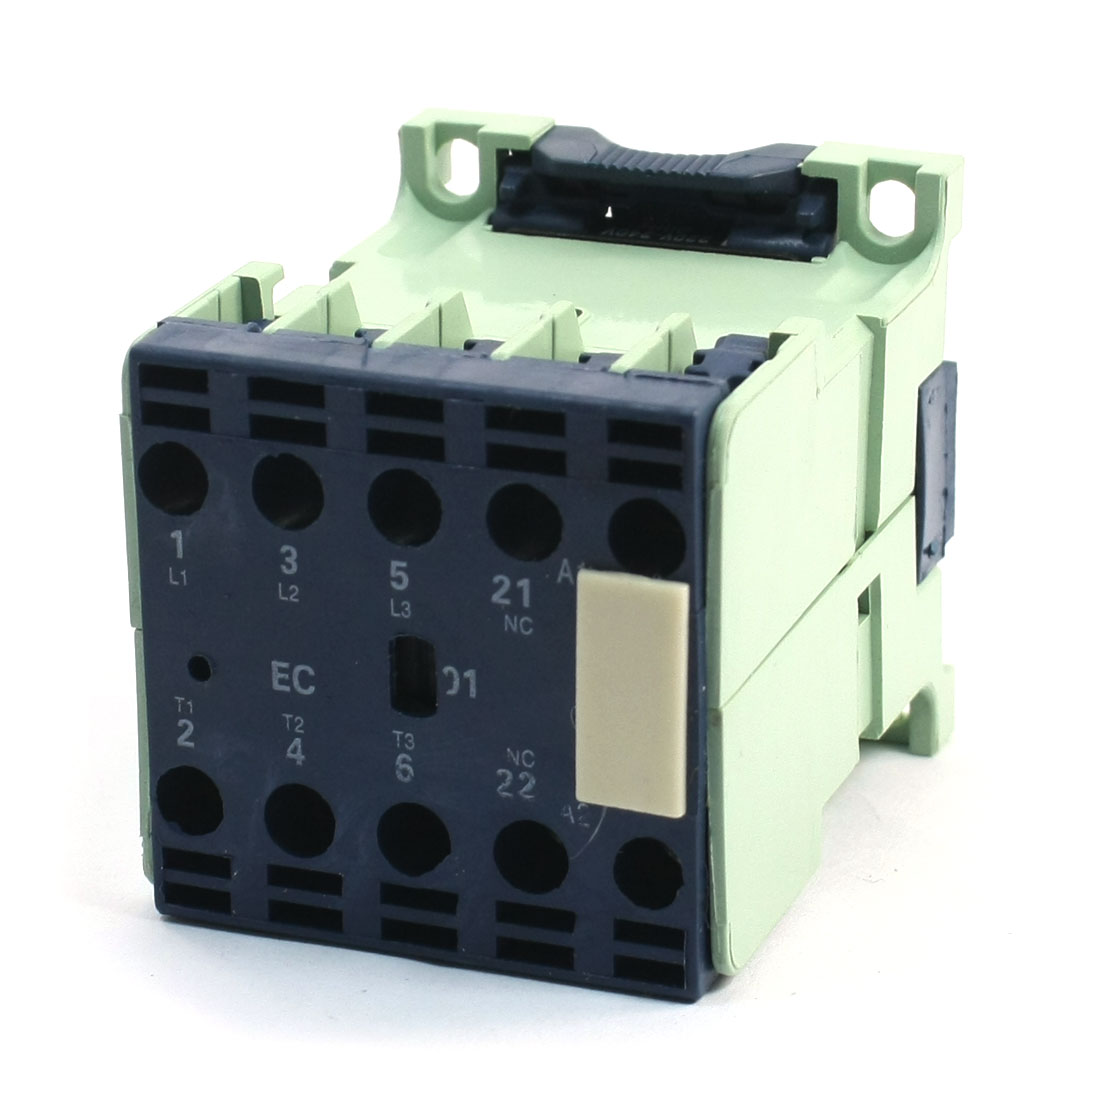 CJX2-1201E DIN Rail Mount AC Contactor 3 Pole One NC 220-240V Coil 12A